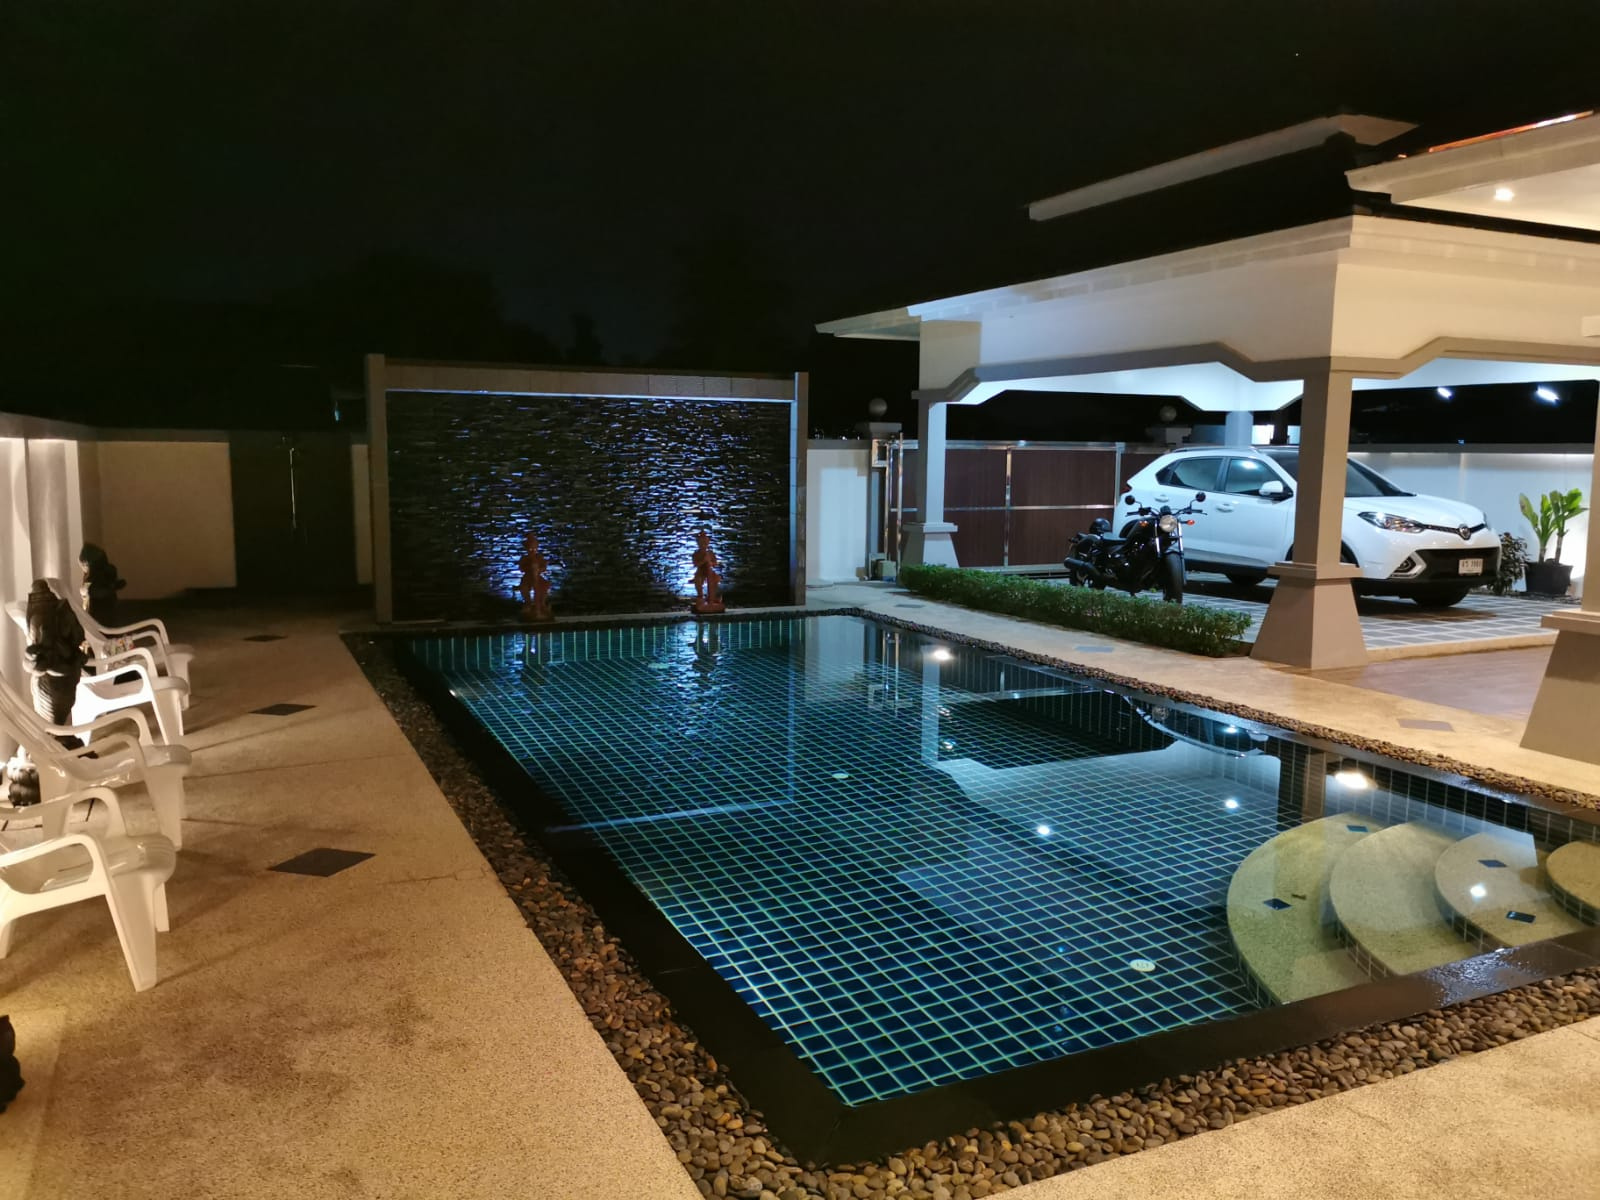 Swimming pool and garage